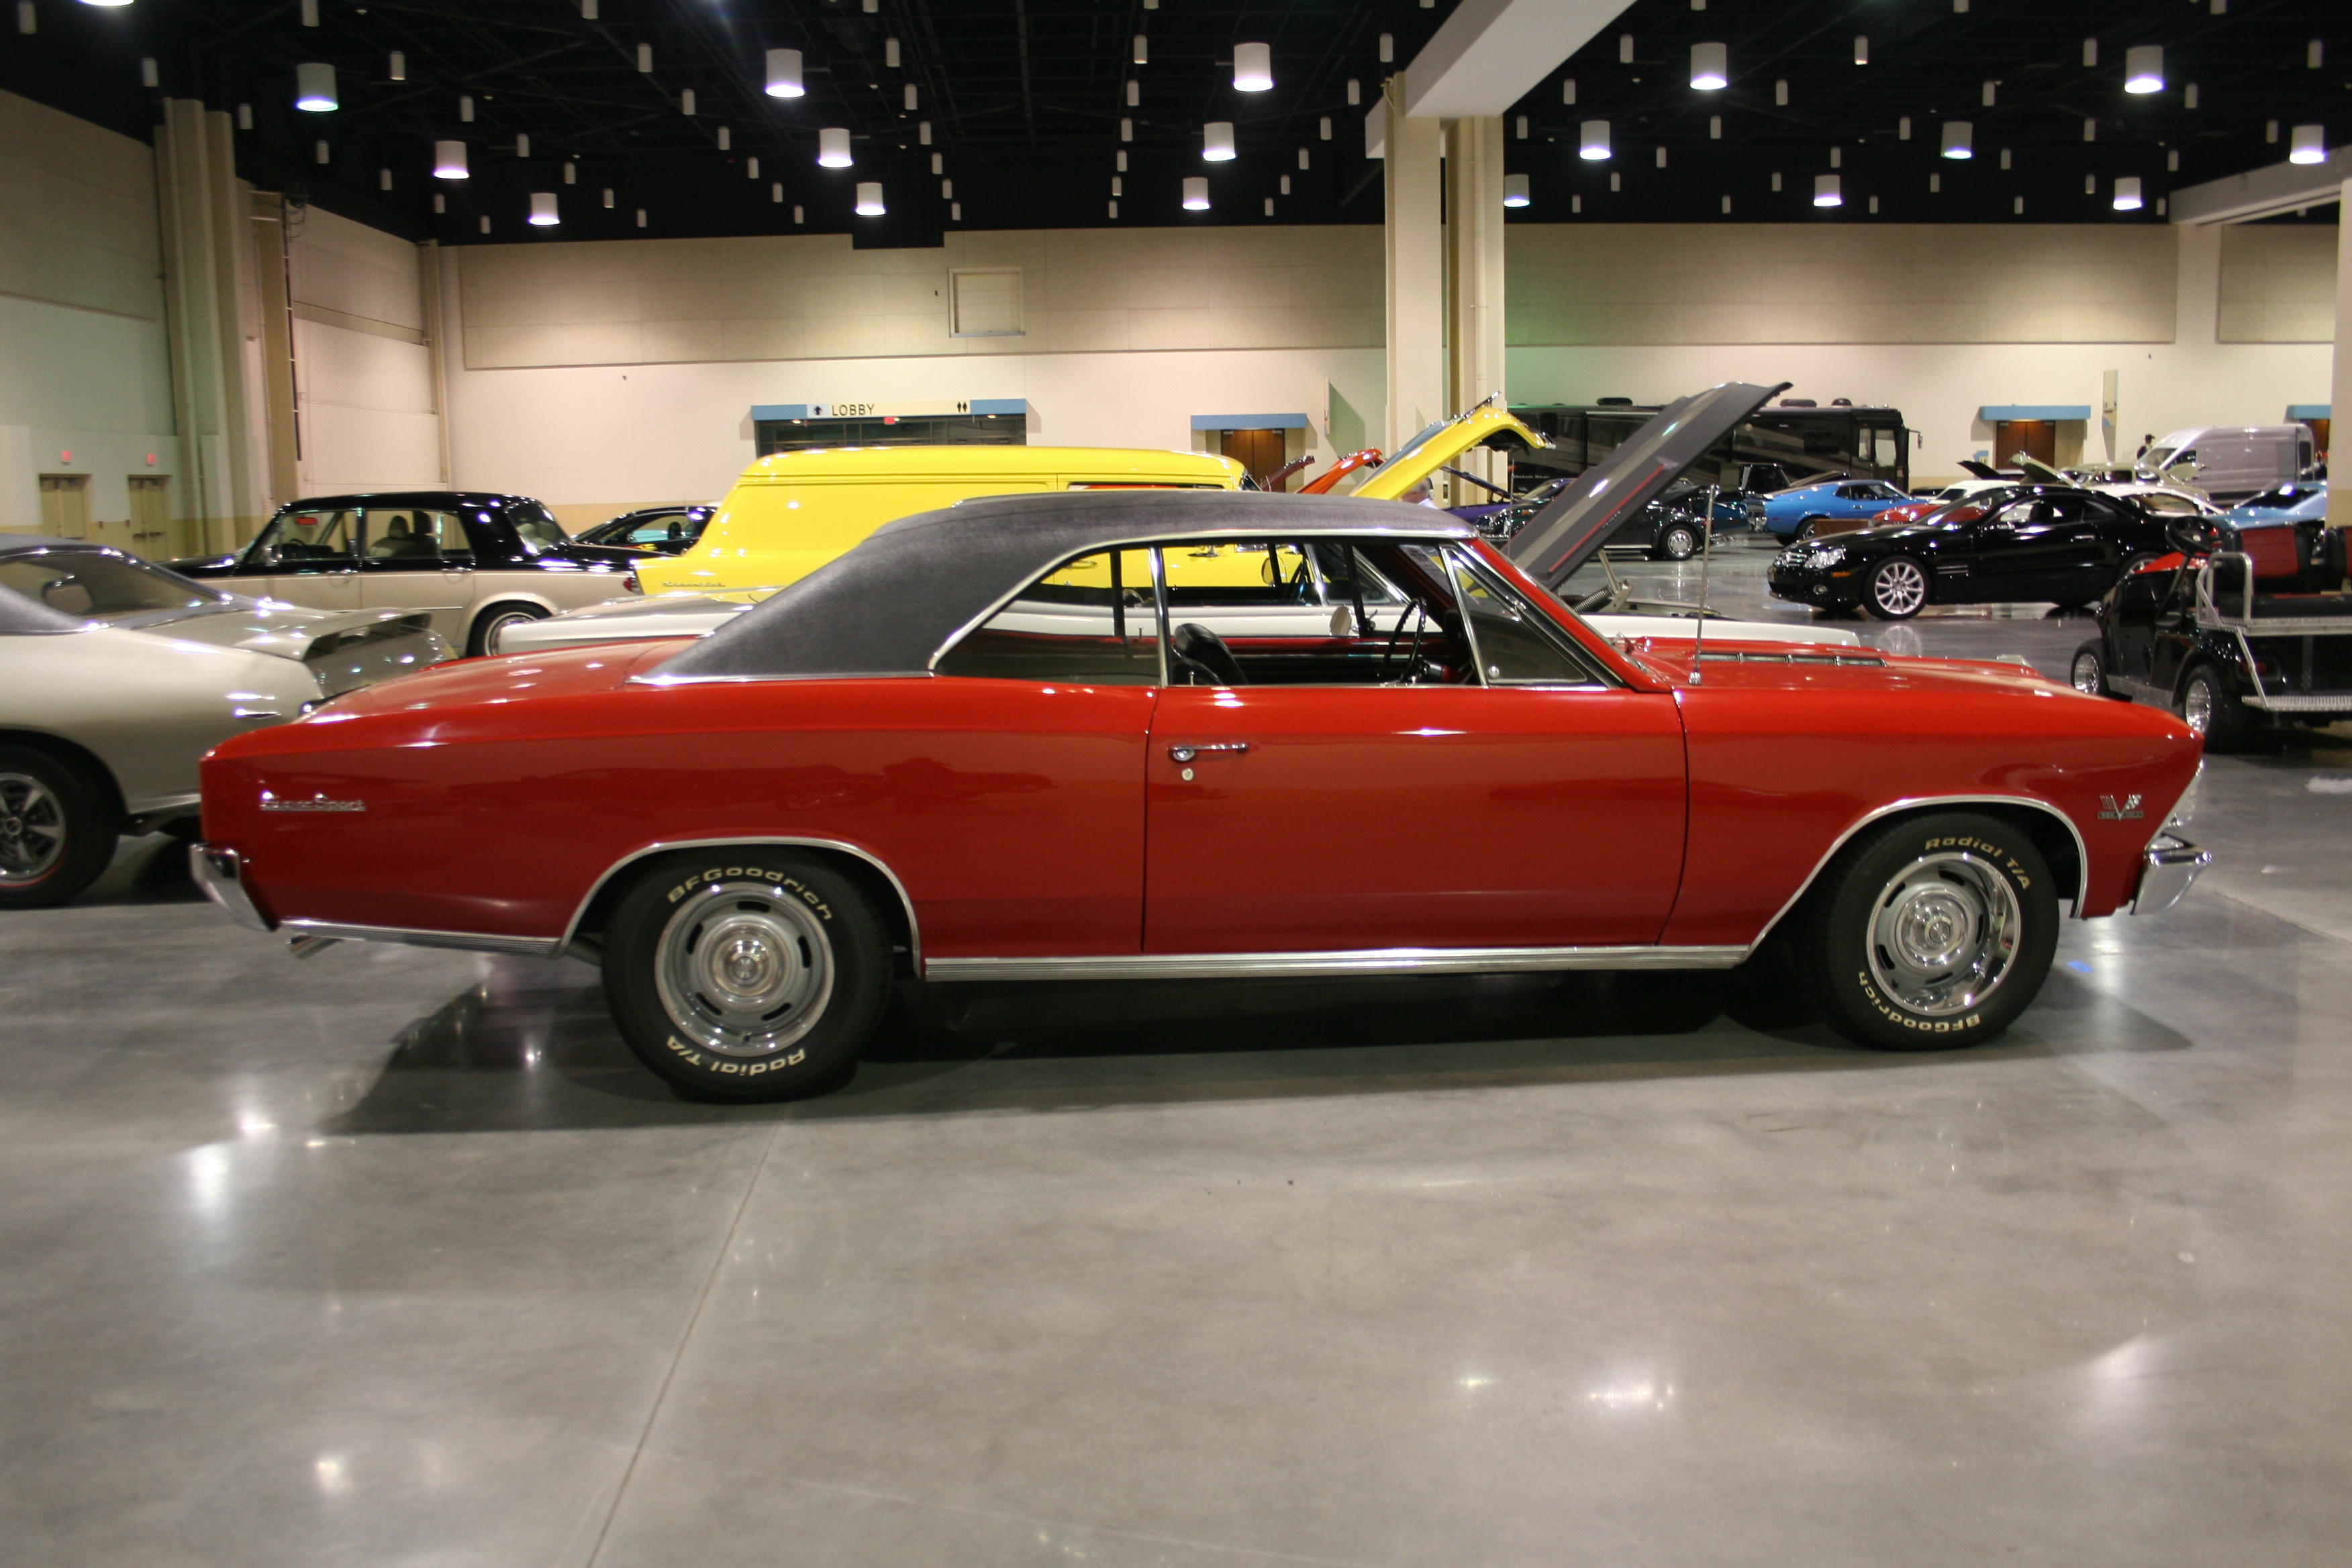 1966 Chevrolet Chevelle Ss 396 For Sale At Vicari Auctions Biloxi 2017 7th Image Of A